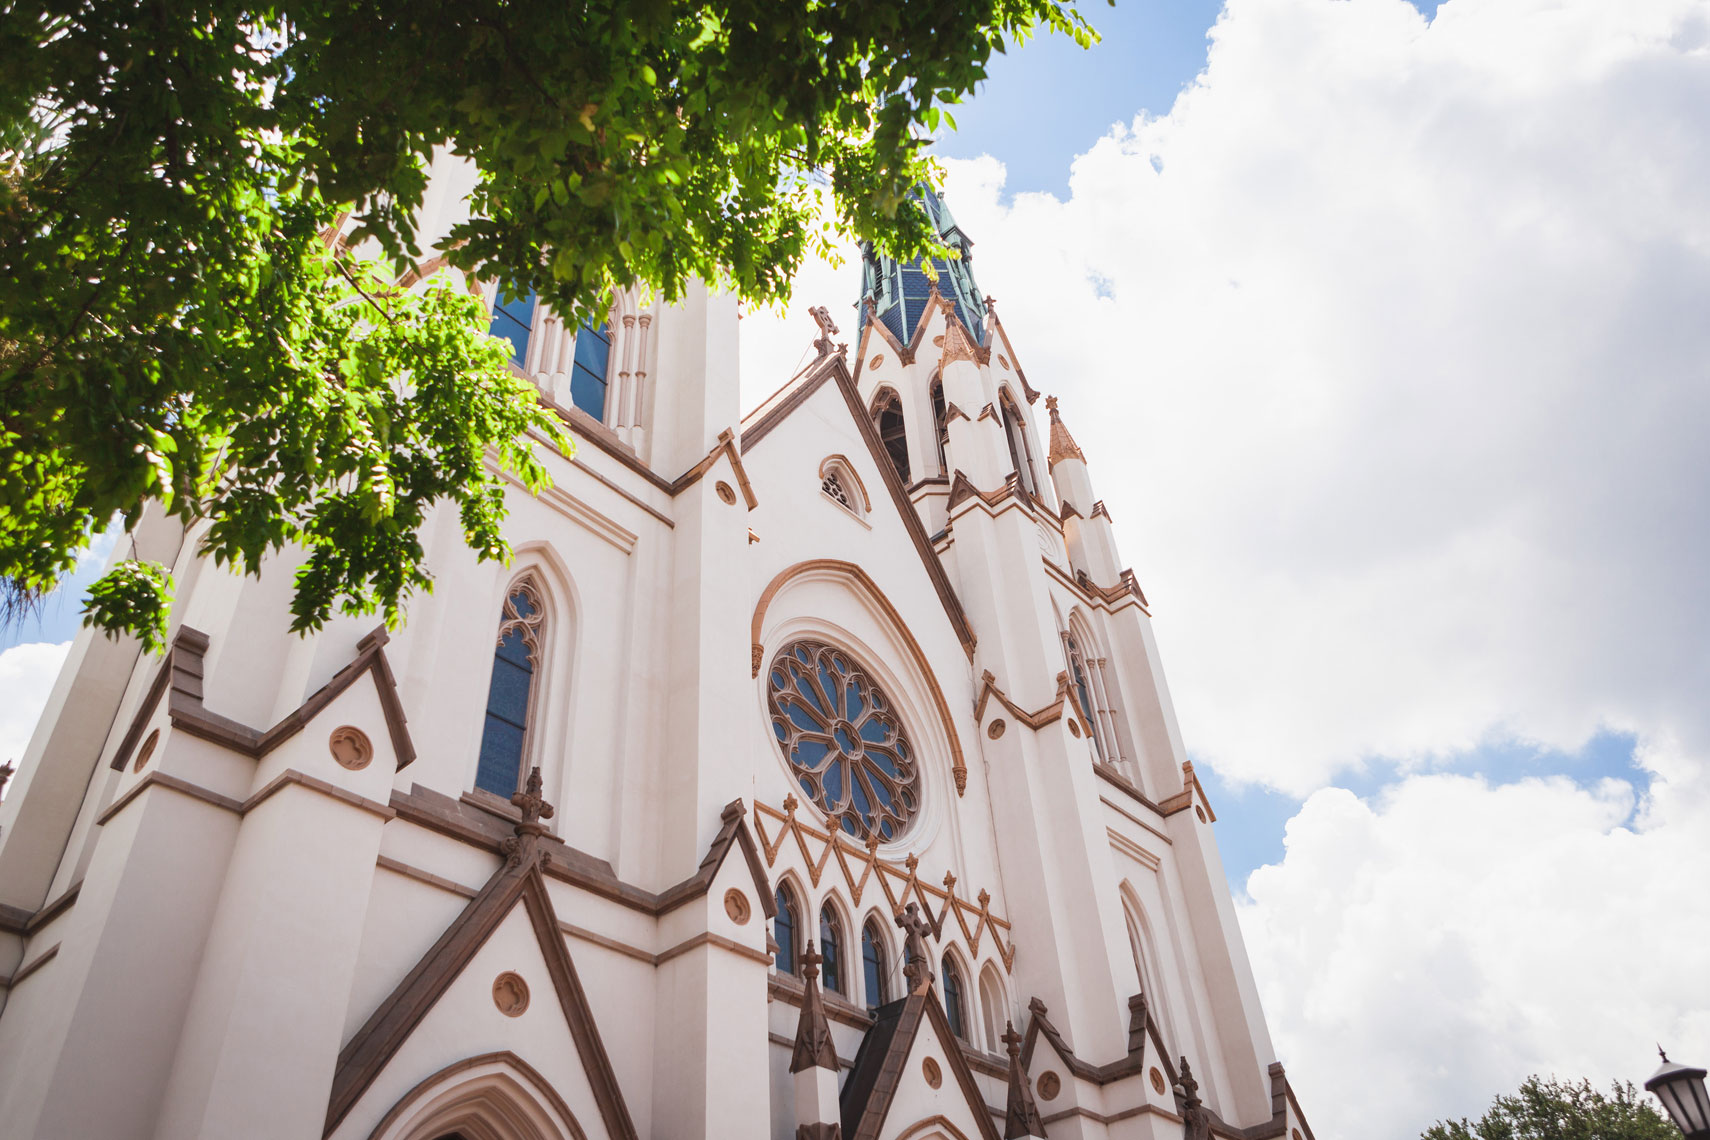 Travel_SouthernStates_08_0351